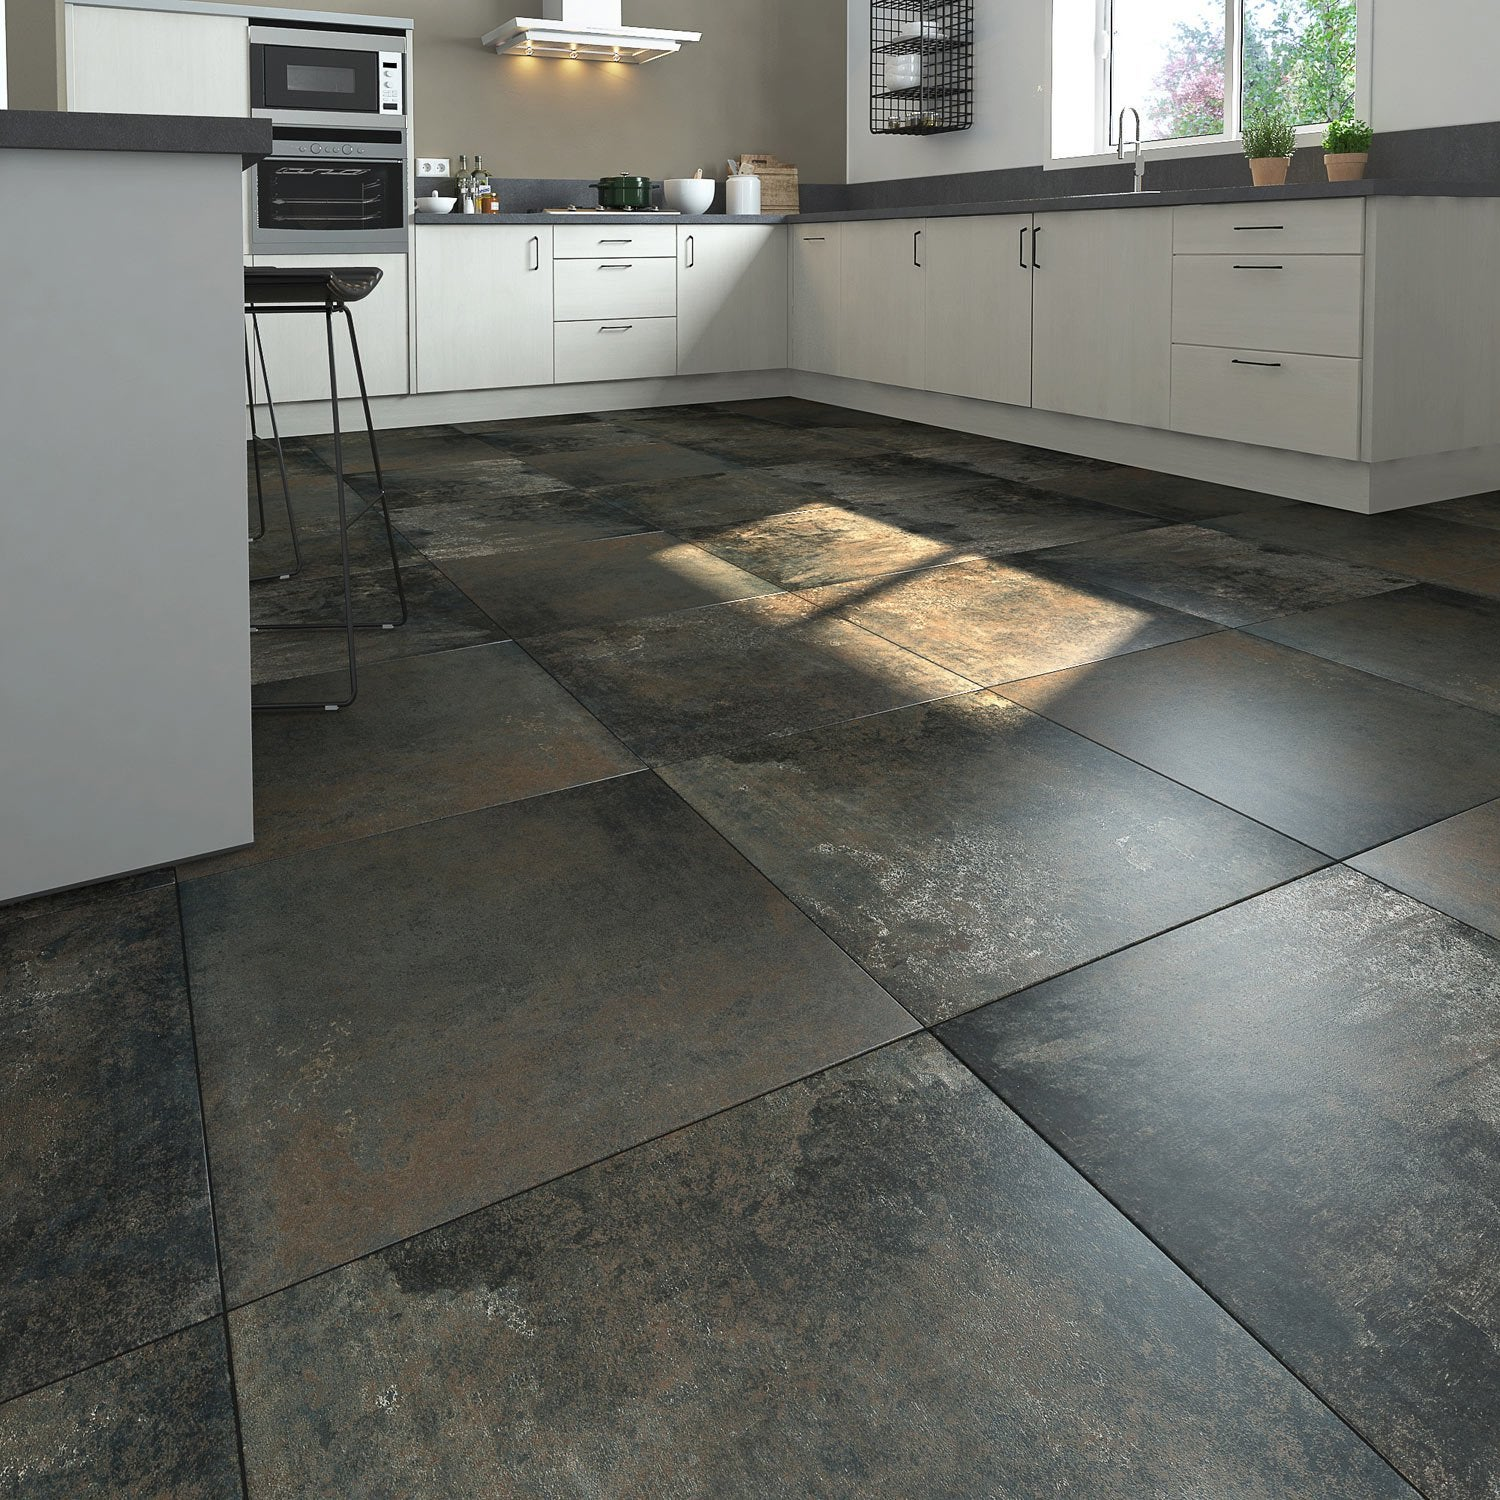 Carrelage 60×60 Leroy Merlin Carrelage X Leroy Merlin From Leroy